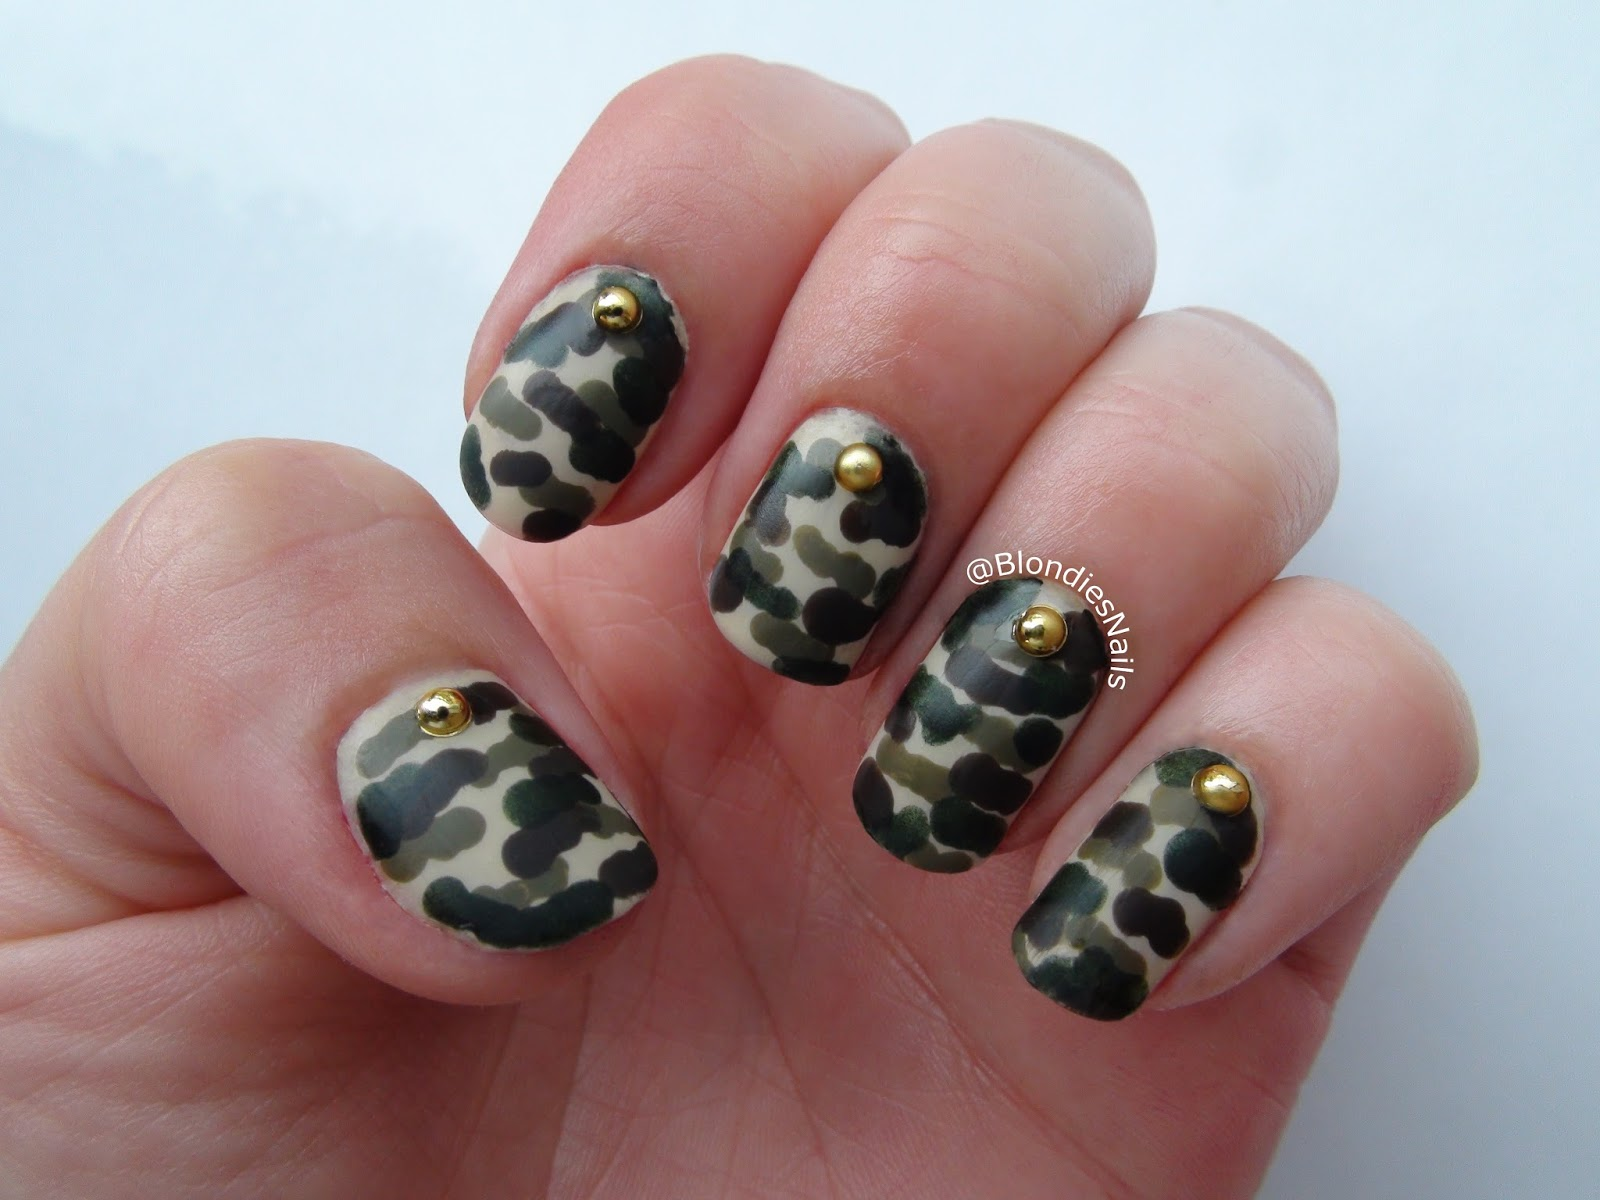 Blondie\'s Nails: Mad for Matte Polish: Get the Most out of Matte Nails